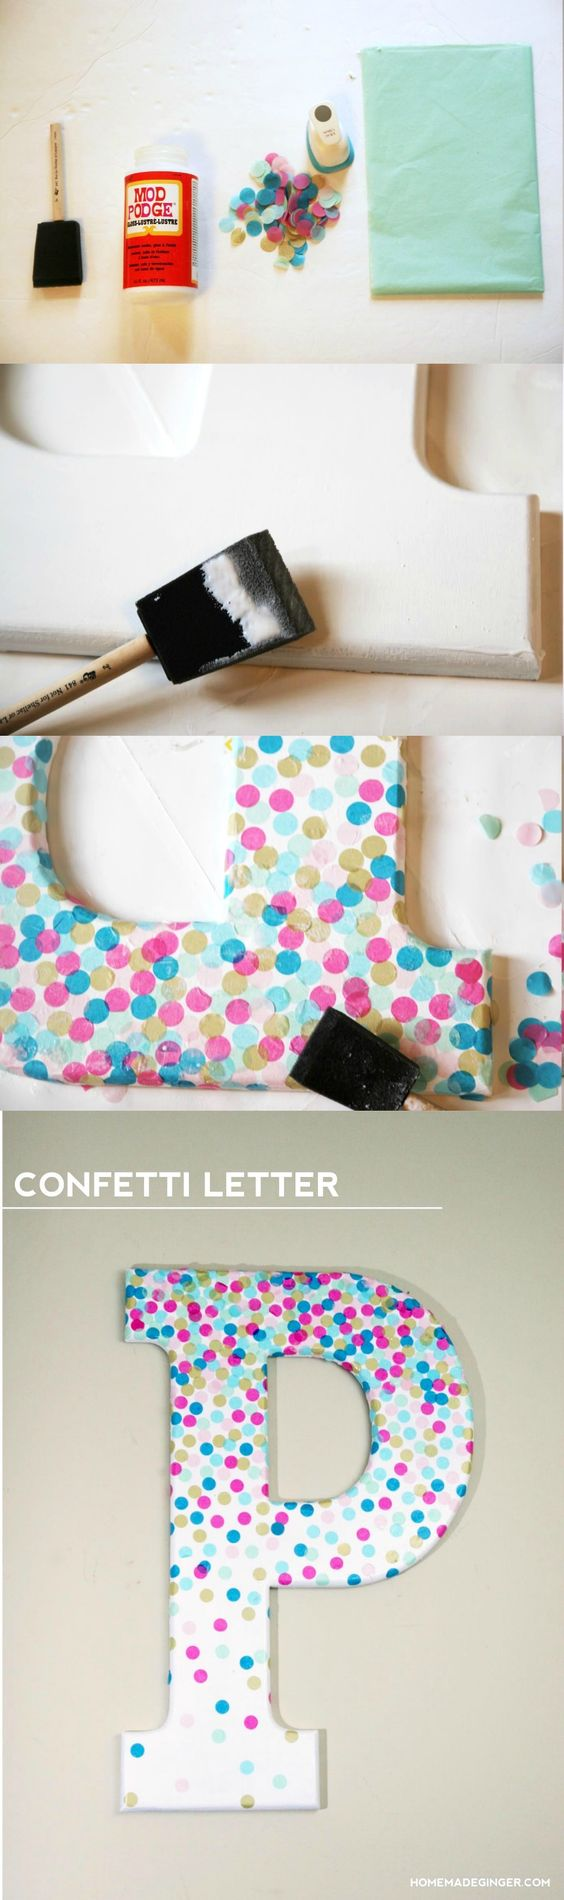 Confetti Decorative Letters For Wall Decor.